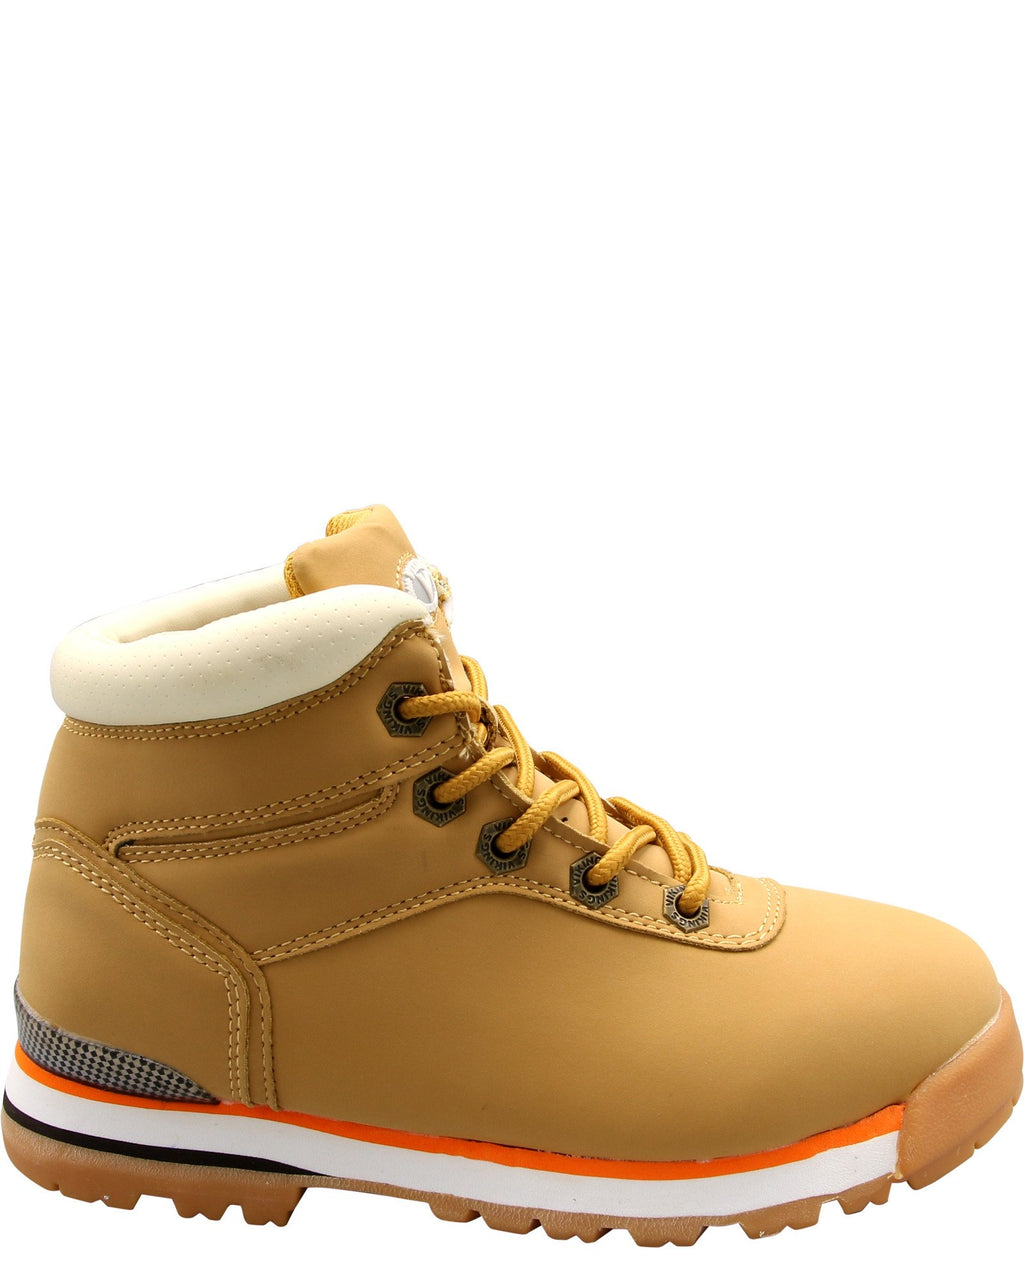 Boy's Euro Hiker Ankle Hiking Boots (PreSchool)